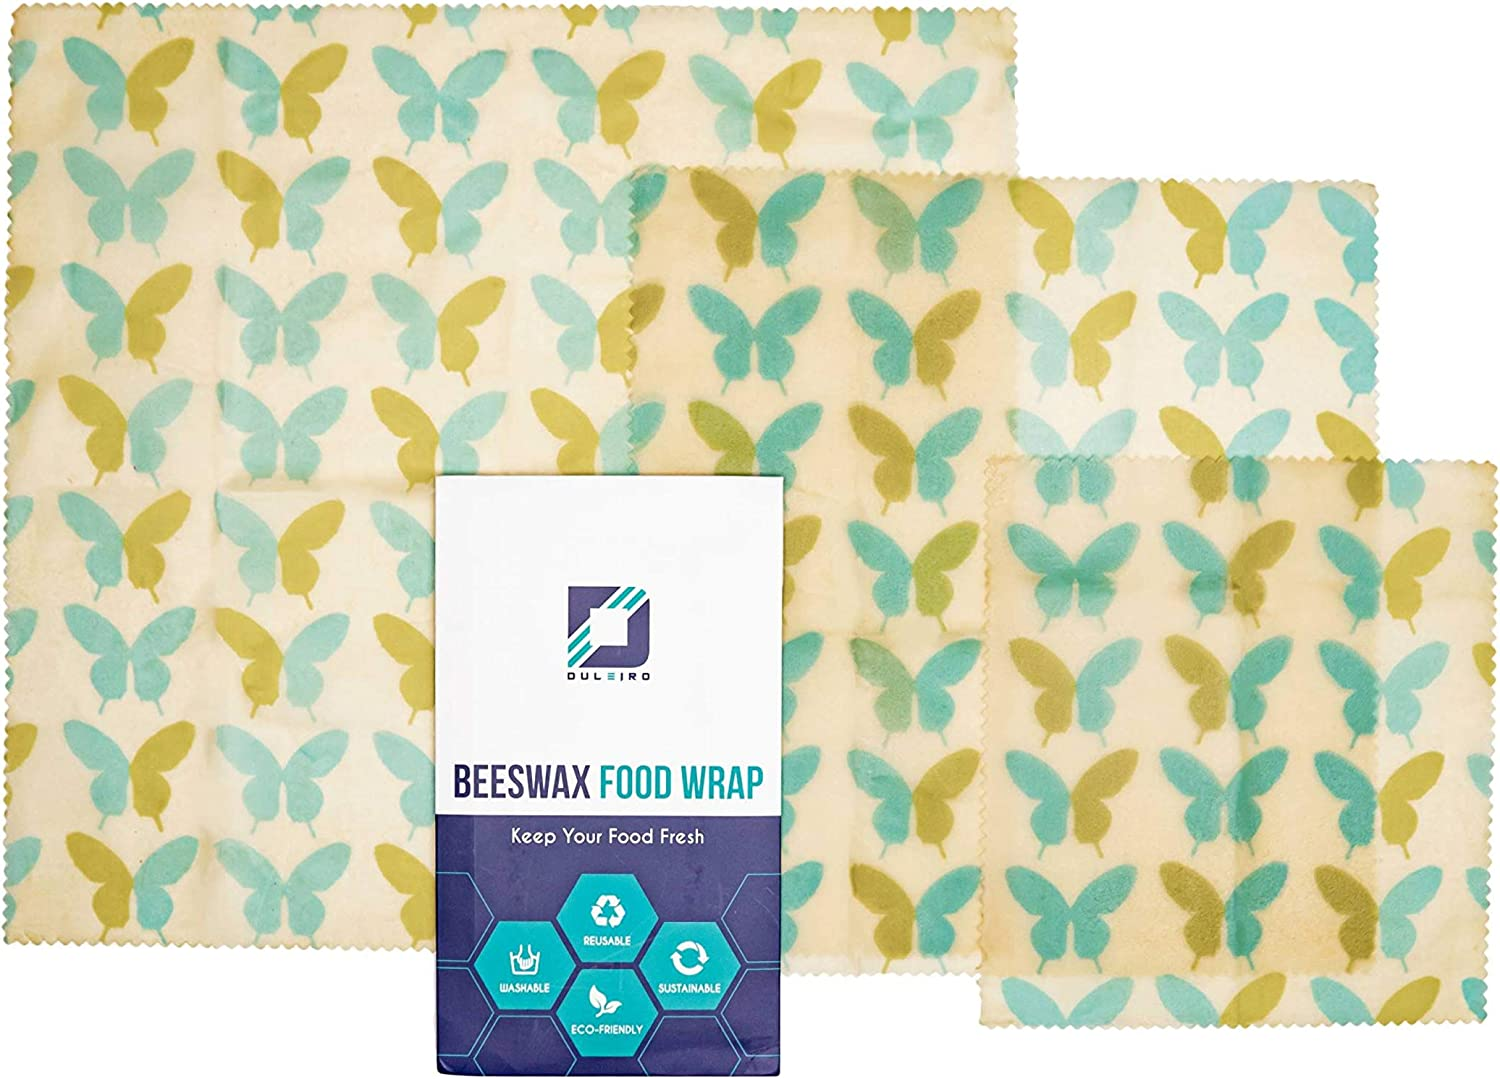 DULEIRO Bee's Wax Food Wraps, Reusable Beeswax Wrap, 3 Pack Assorted Sizes, Eco- Friendly, Biodegradable, Reusable, Washable, Sustainable, Plastic Alternative, 3 Pack Includes LG, M, SM